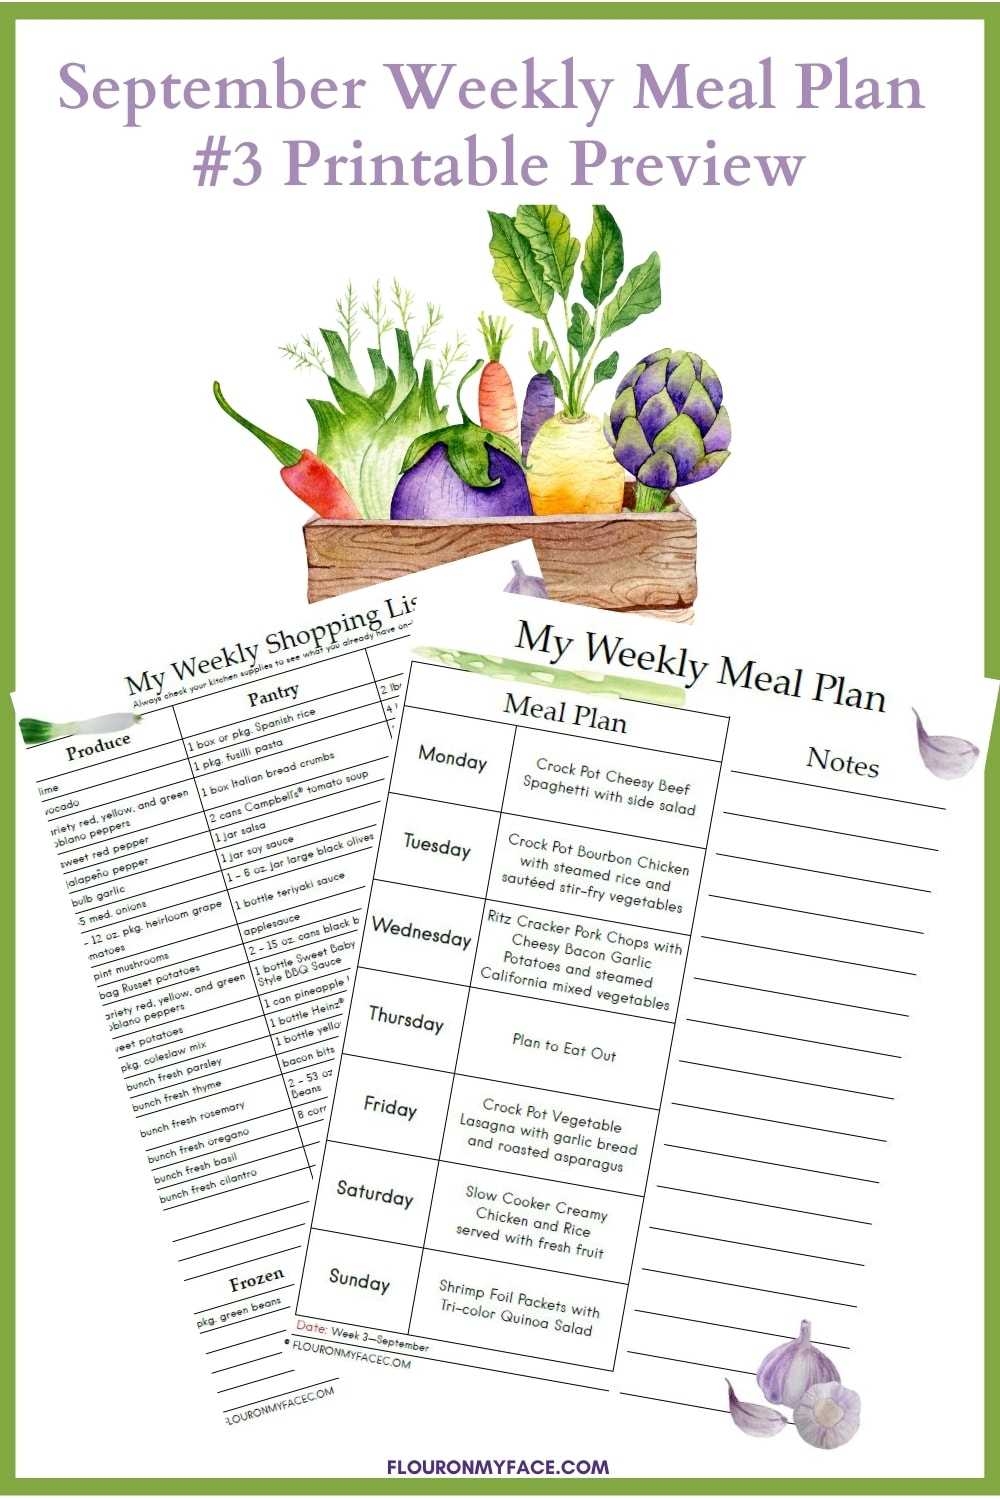 September Weekly Meal Plan #3 Printable Preview